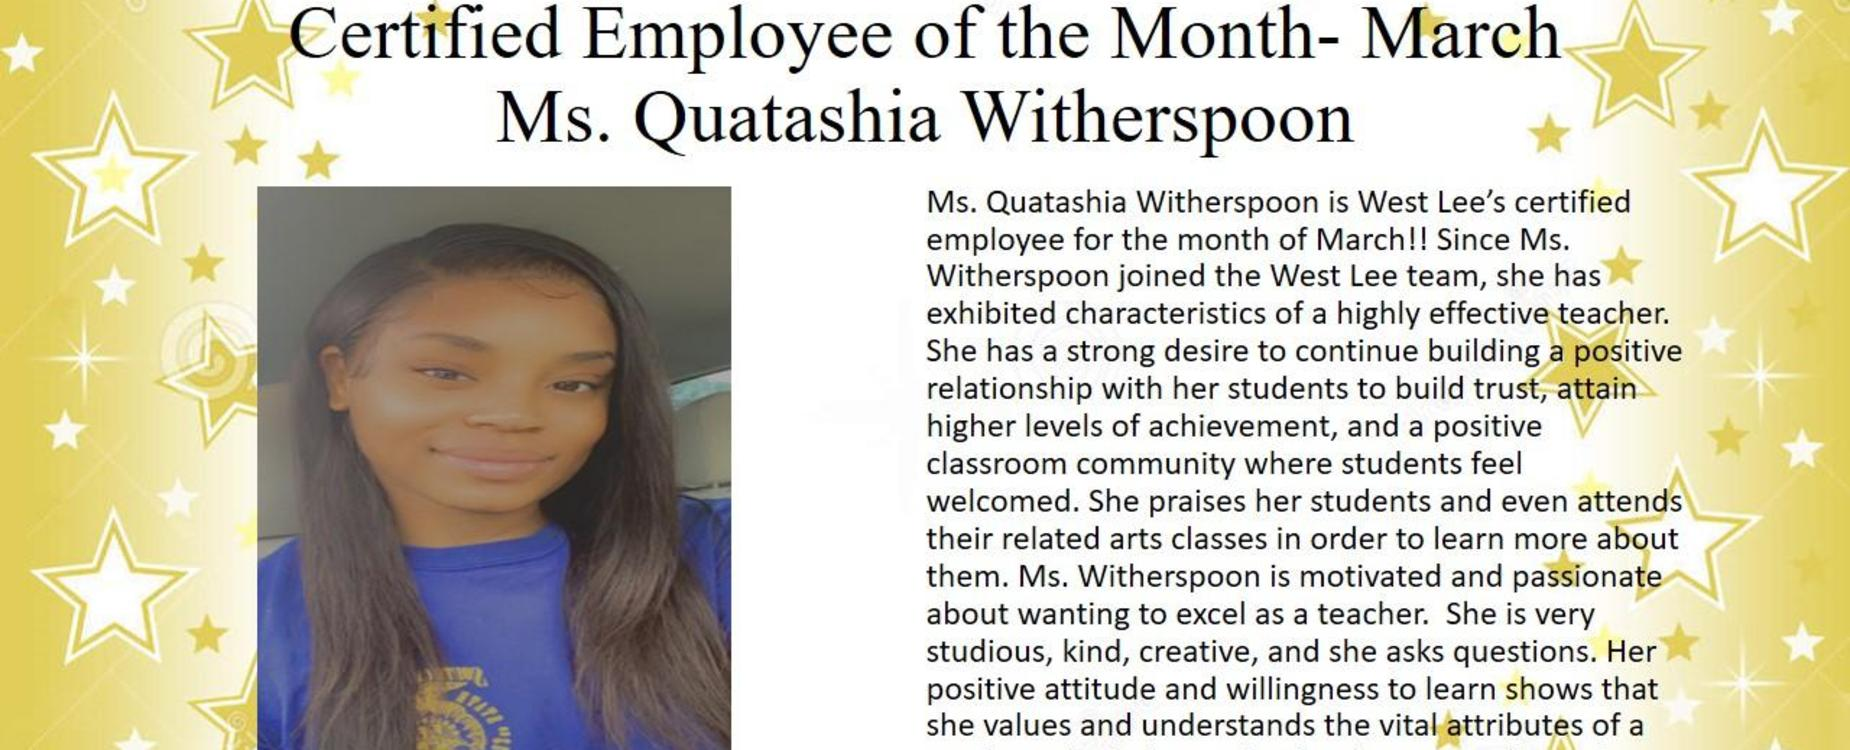 Certified Employee for the Month of March- Ms. Quatashia Witherspoon, 5K Teacher